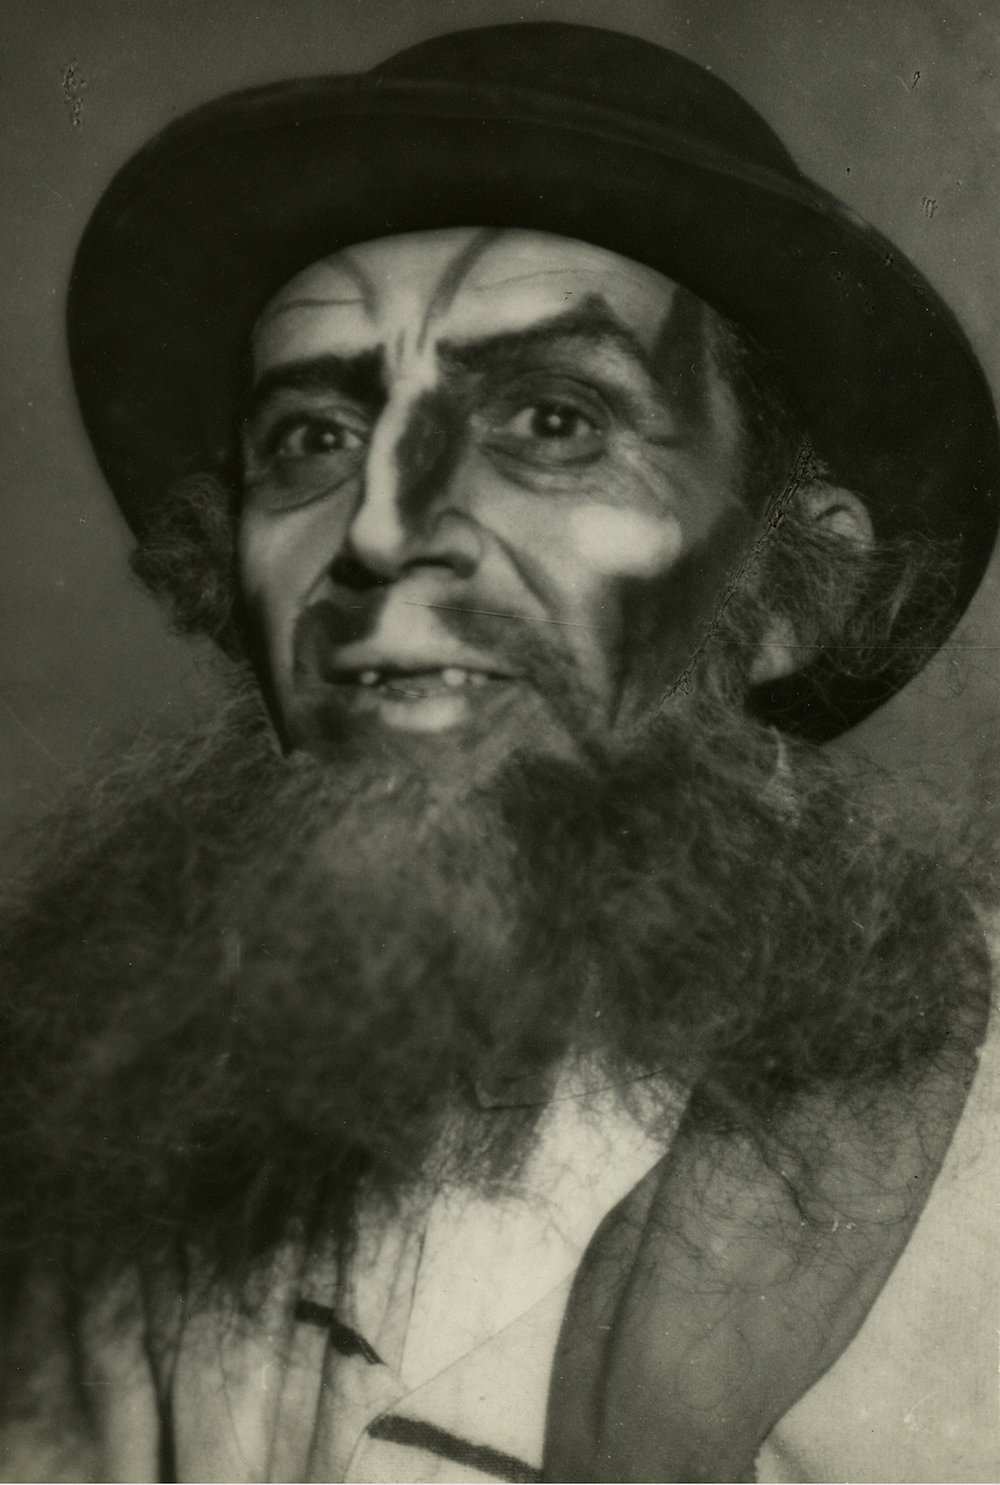 Photograph of Moscow State Yiddish Theatre actor in makeup.